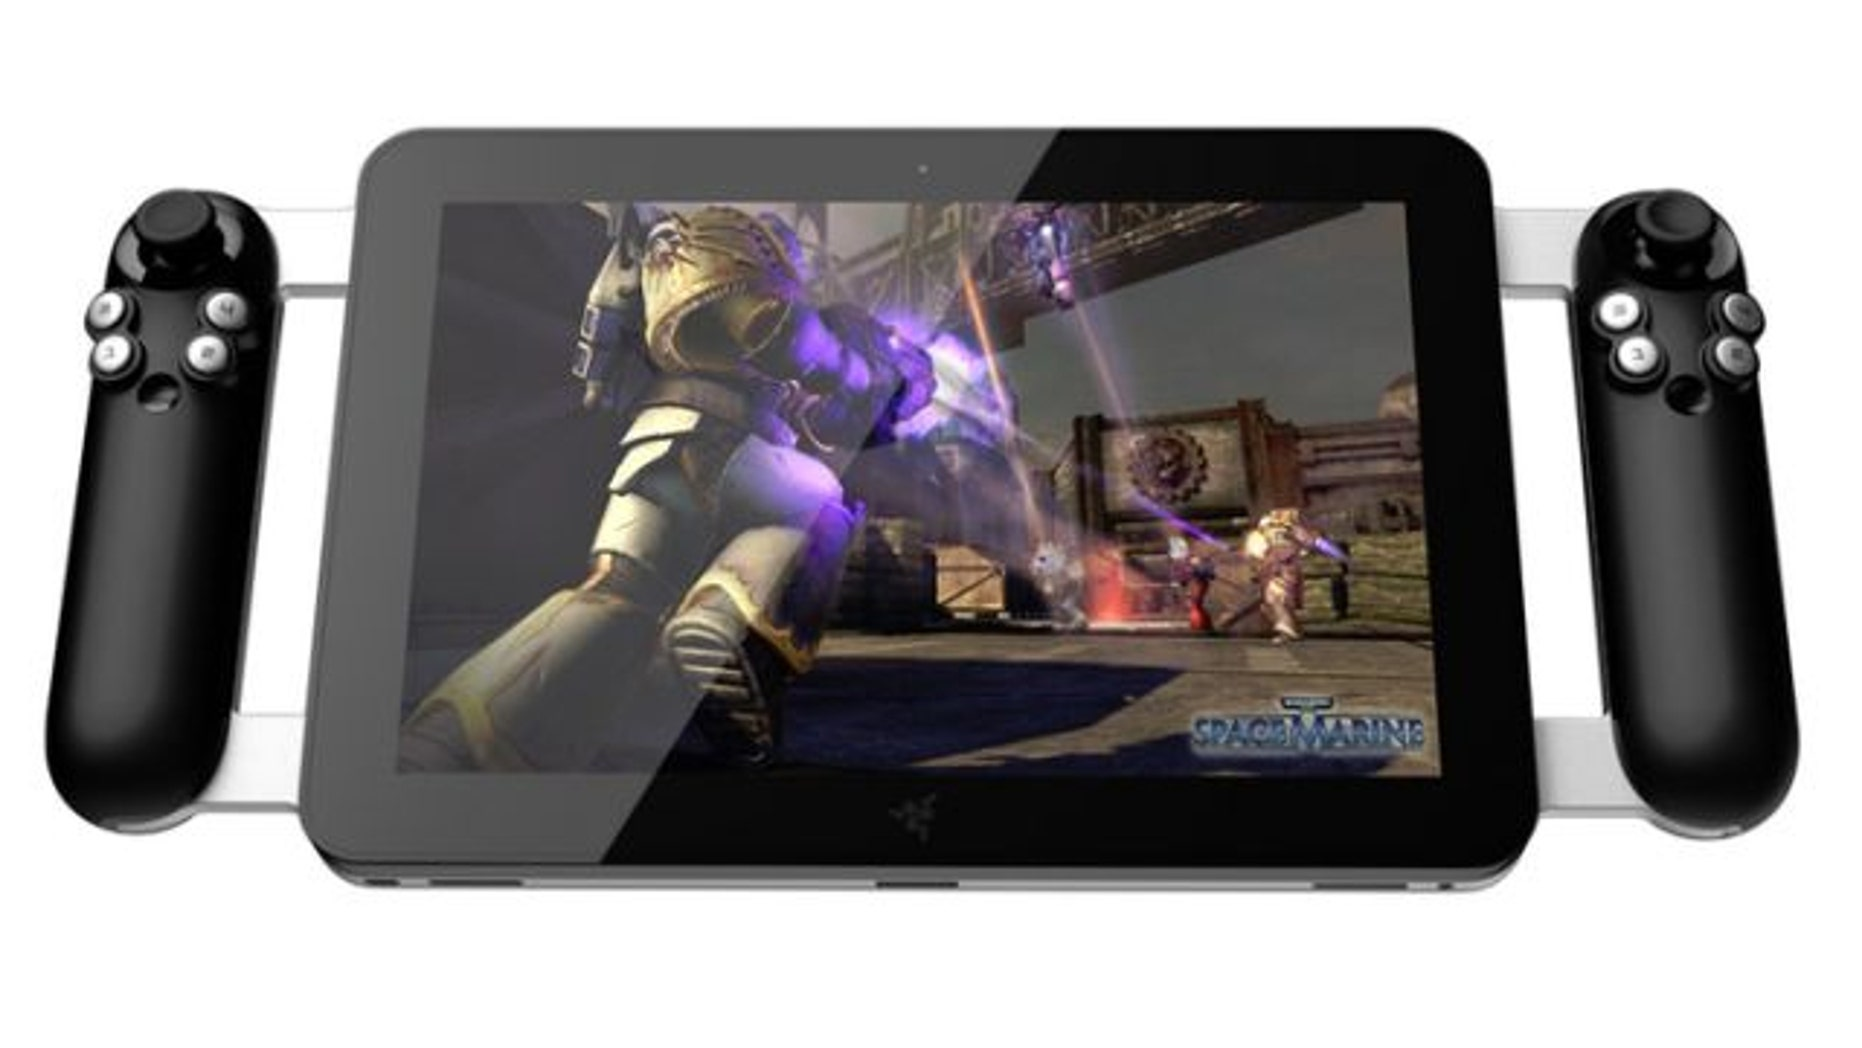 Razer's crowdsourced gaming tablet.